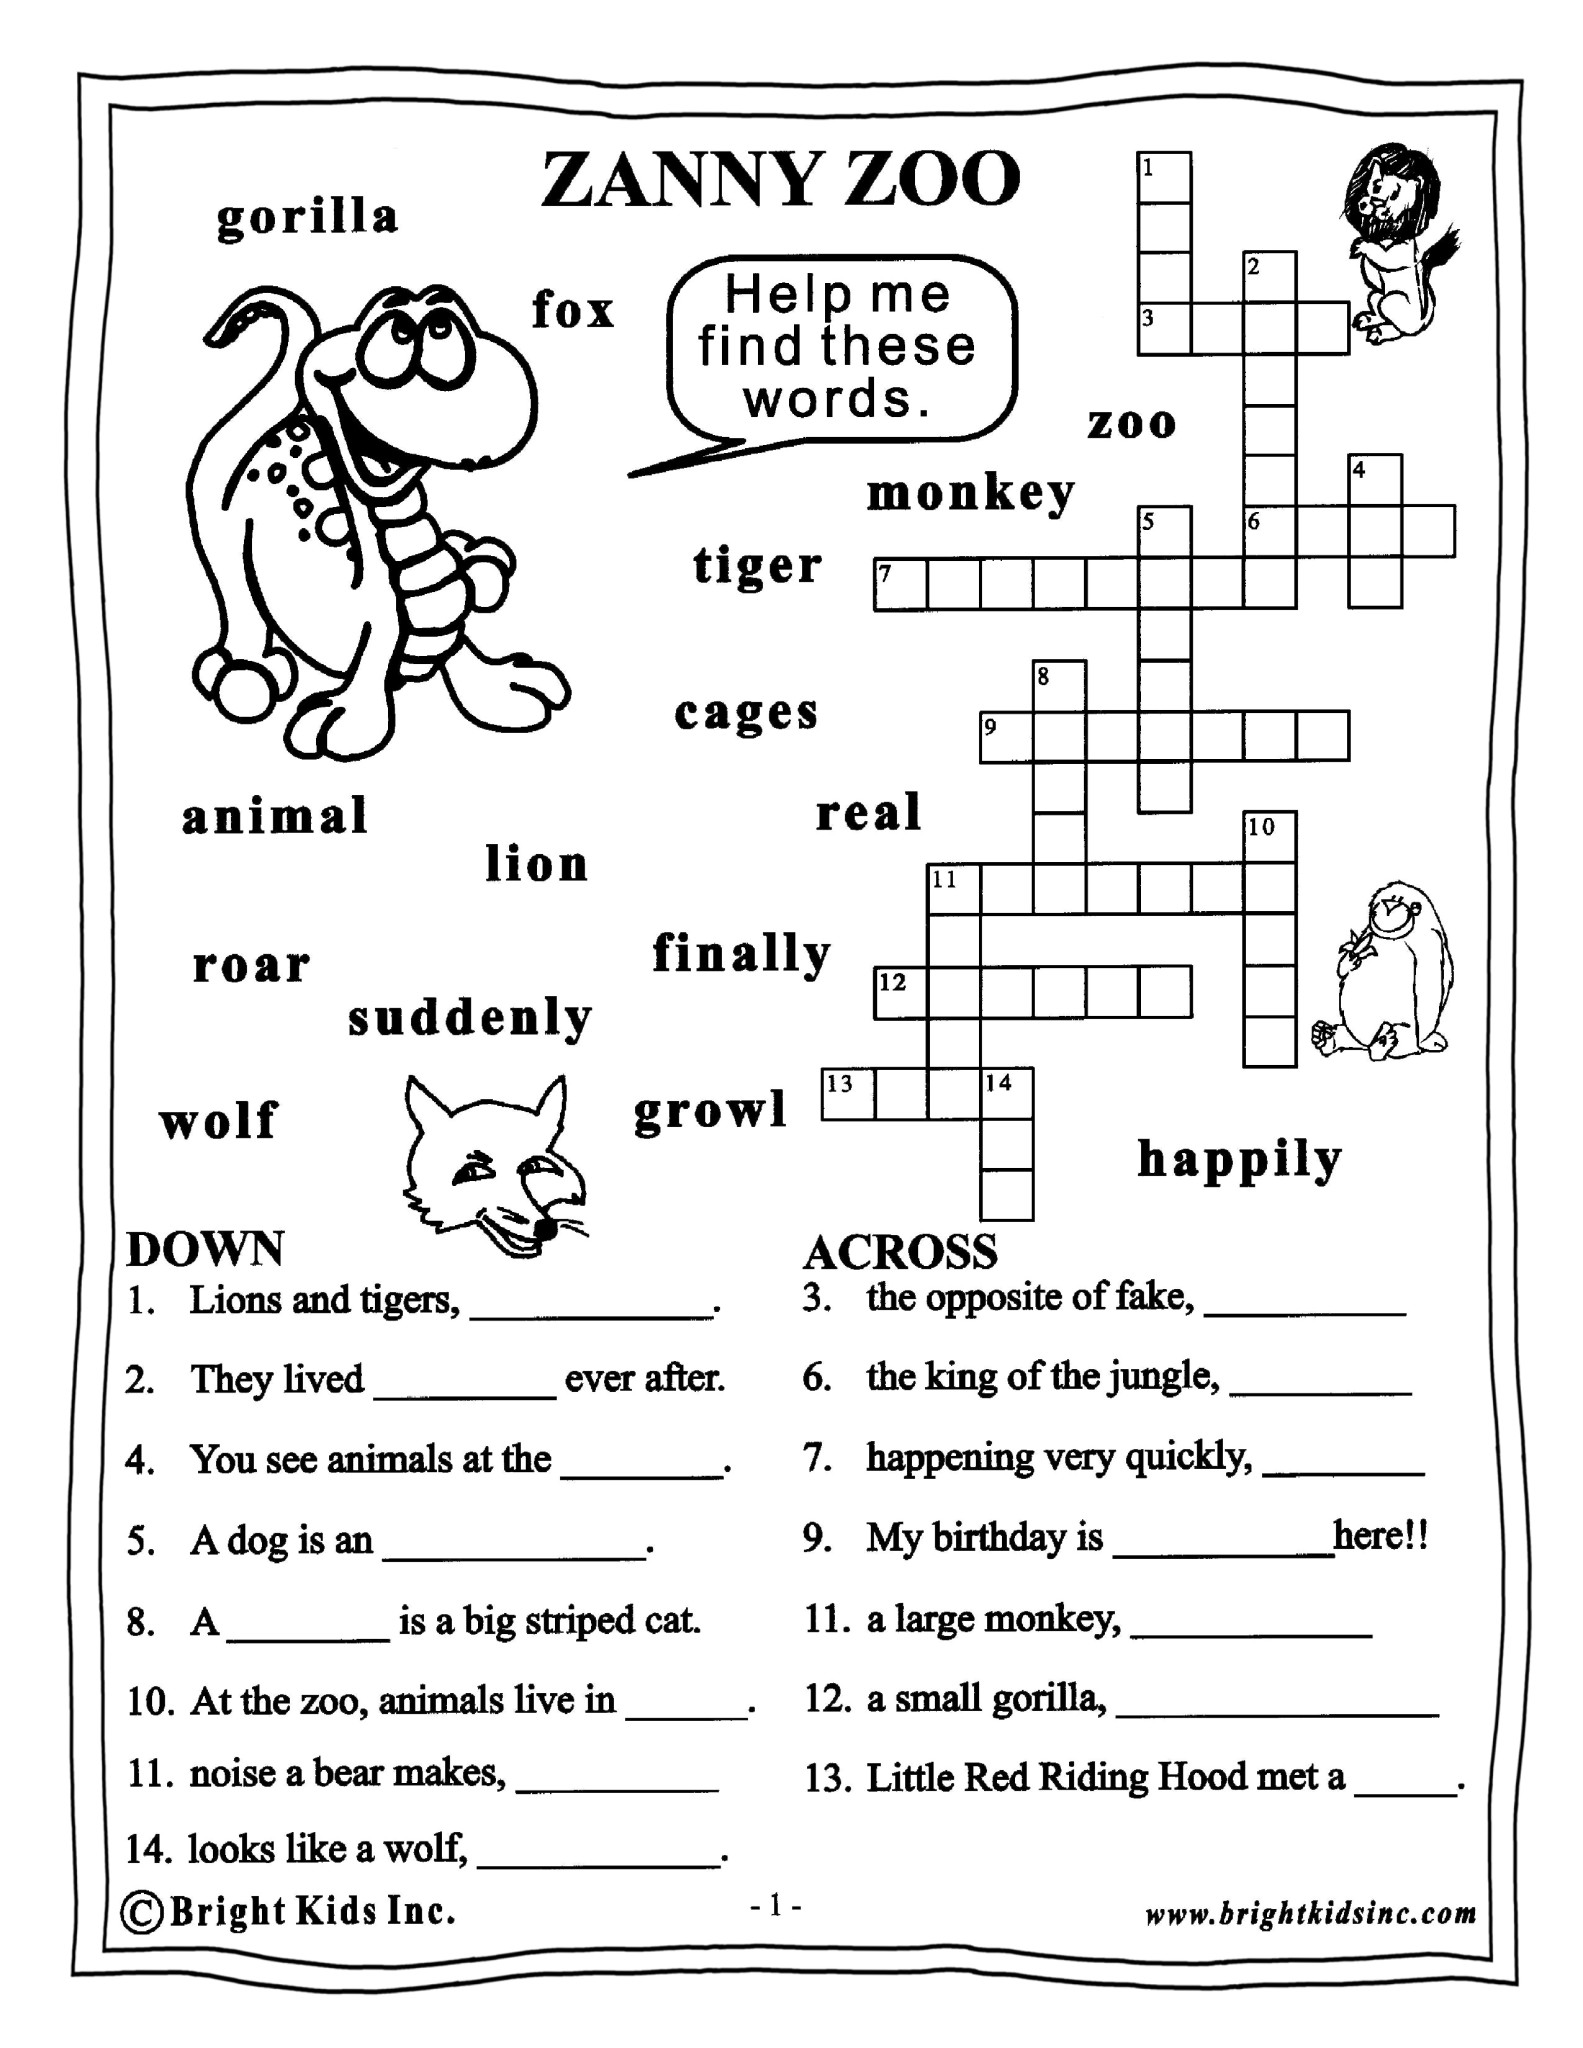 Printables Grade 3 English Tempojs Thousands Of Printable Activities